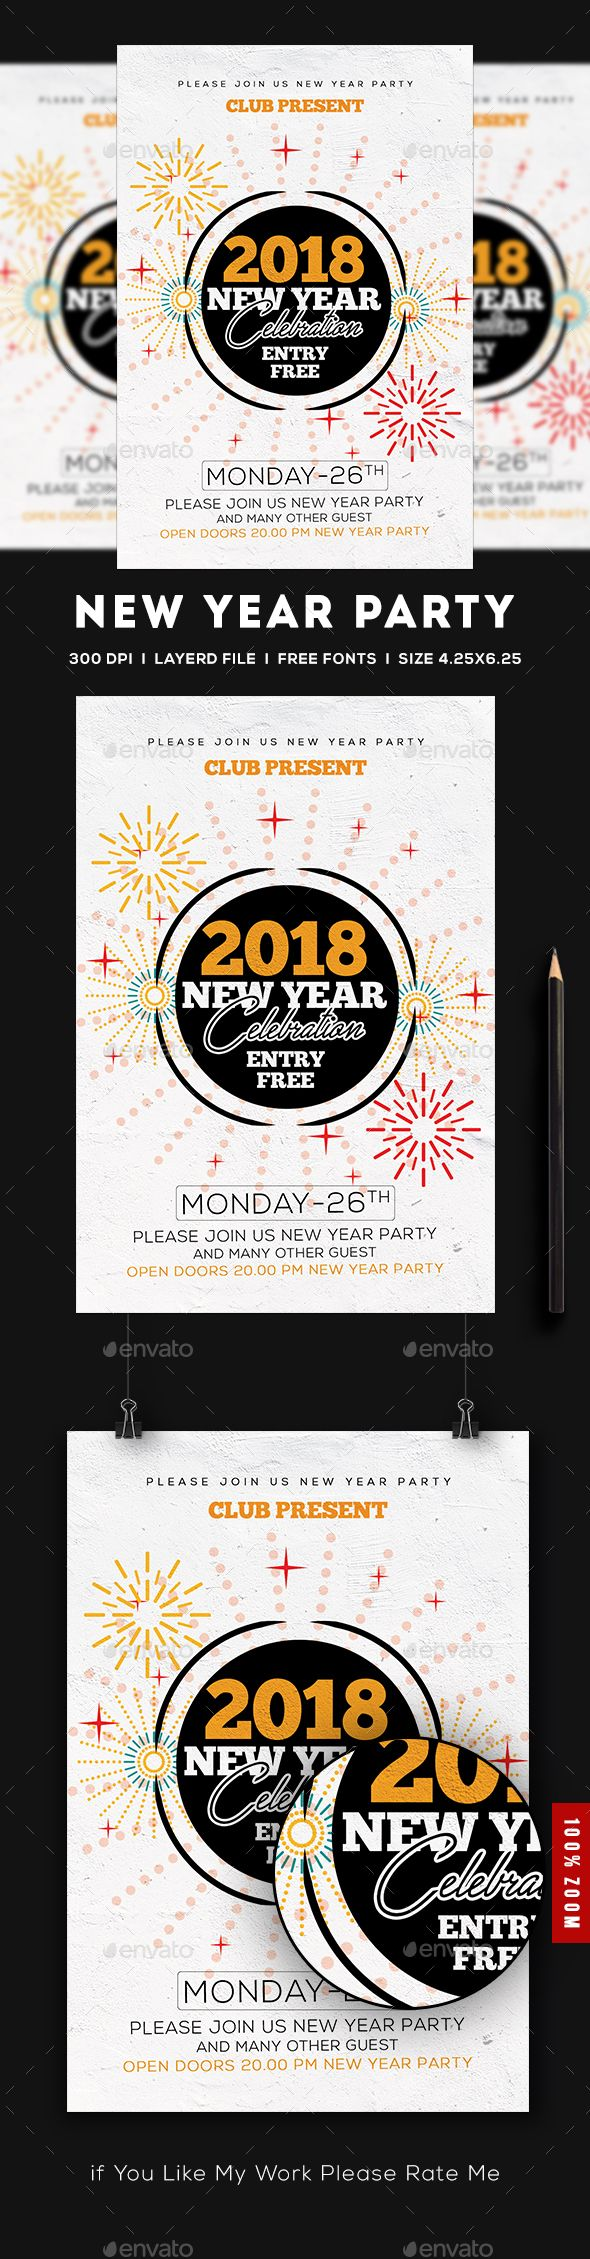 2018 New Year Flyer | Event flyers, Flyer template and Party flyer